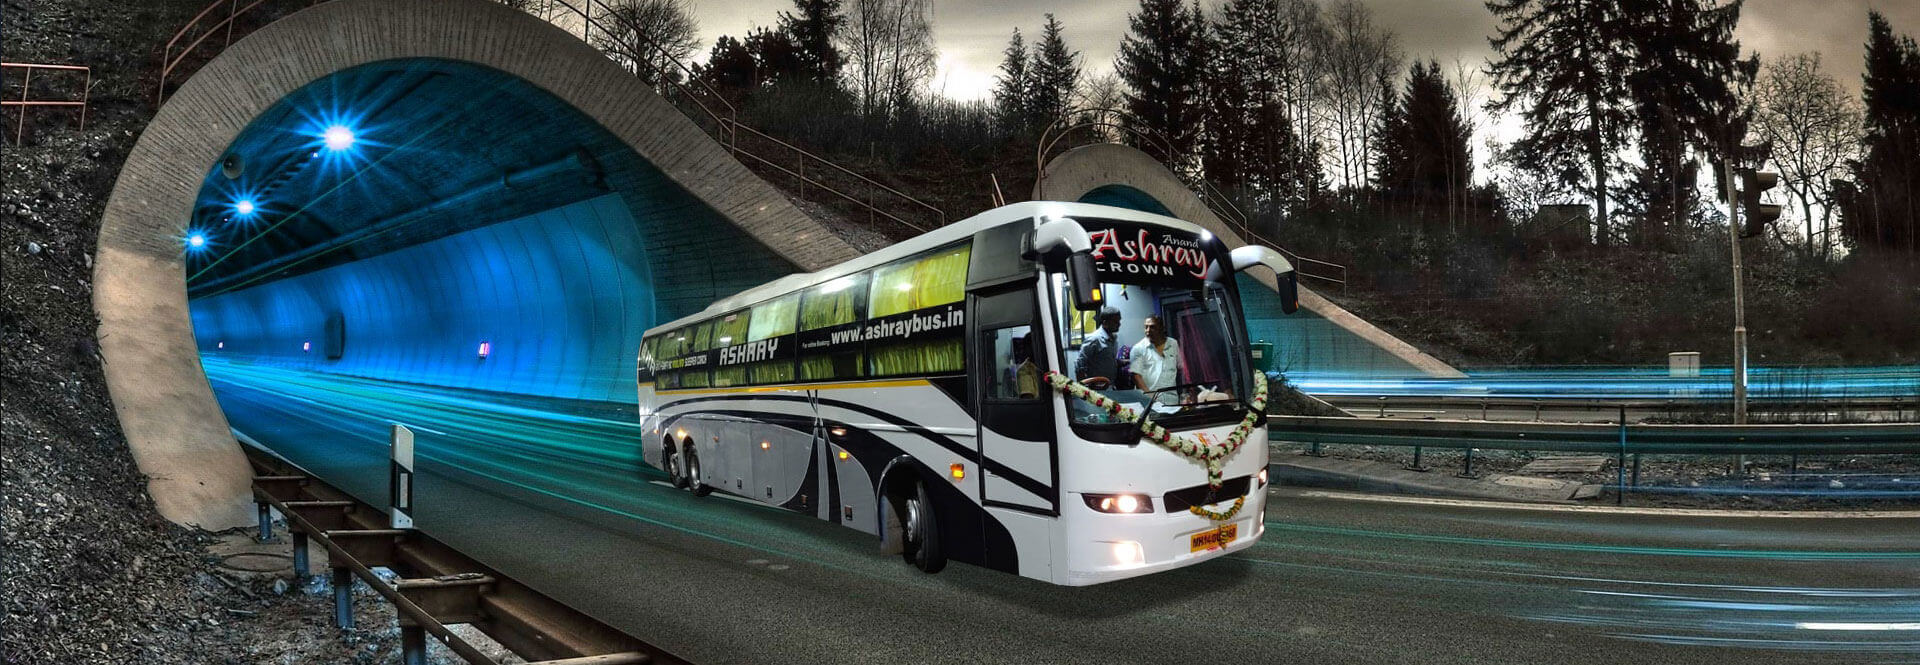 Online Bus Ticket Booking Ashray Travels